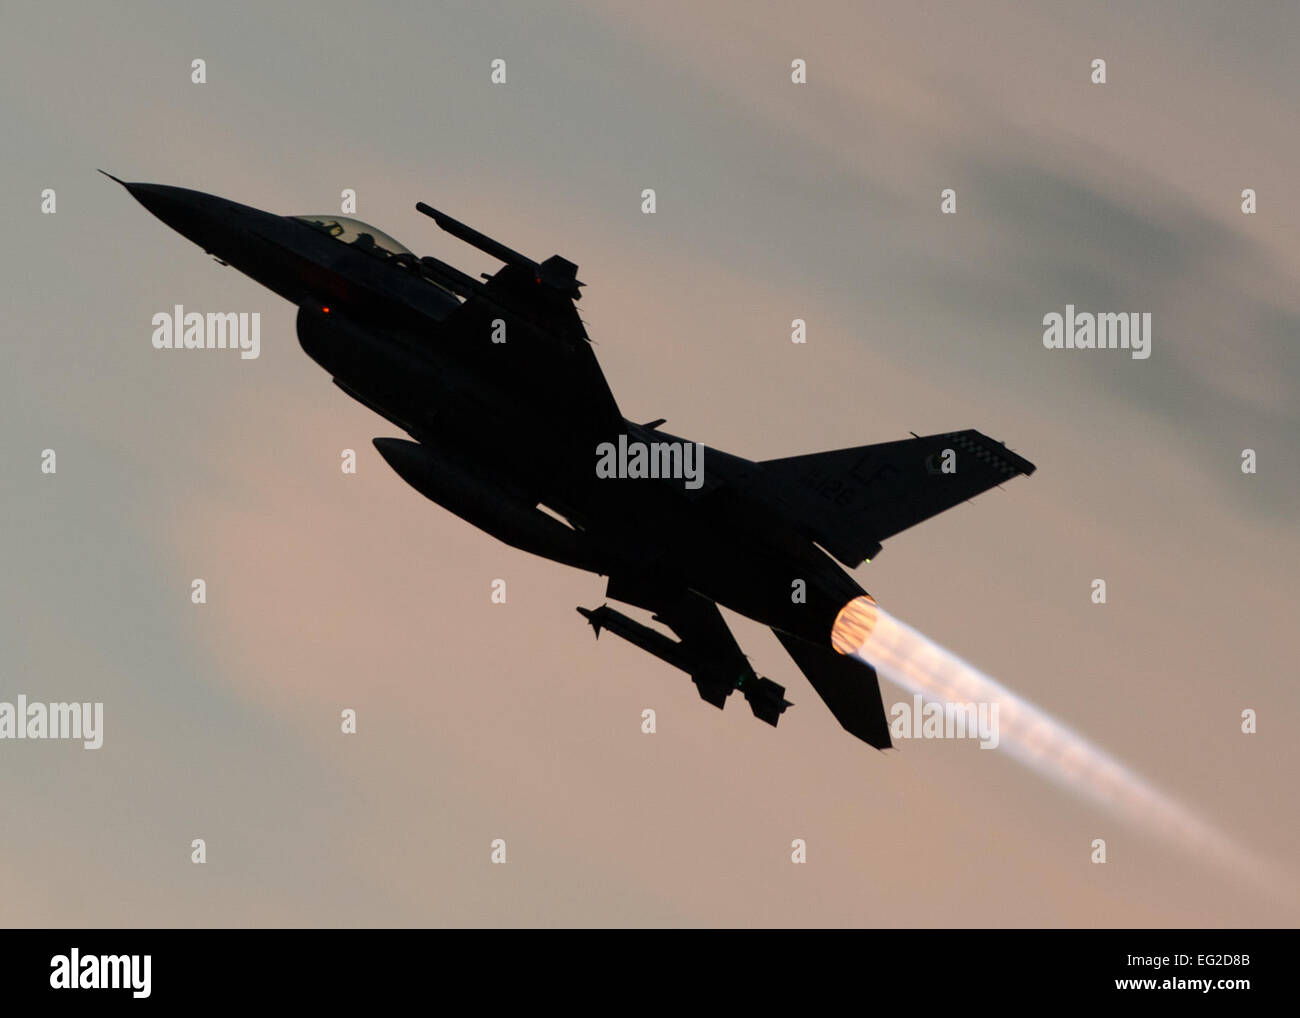 An F-16 Fighting Falcon takes off for a training sortie over the White Sands Missile Range's 10,000 square mile - Stock Image